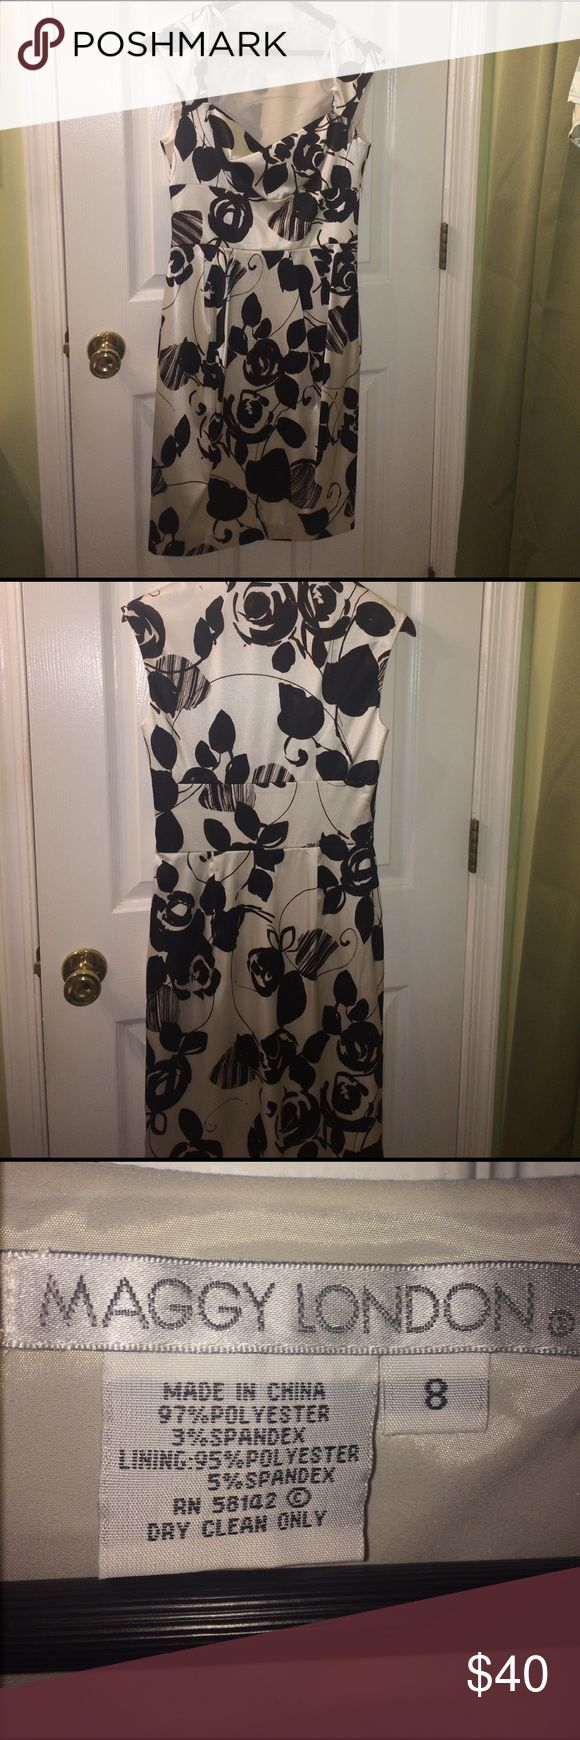 Maggy London 40's style dress. This gorgeous dress will have your man wondering why he waited so long to take you out for date night. This dress is fully lined and dry clean only. It is approximately 39 inches long from the shoulder to the bottom of the hem.  I never had the chance to wear this so I am reposhing it so someone out there can love it. Questions. Please ask Maggy London Dresses